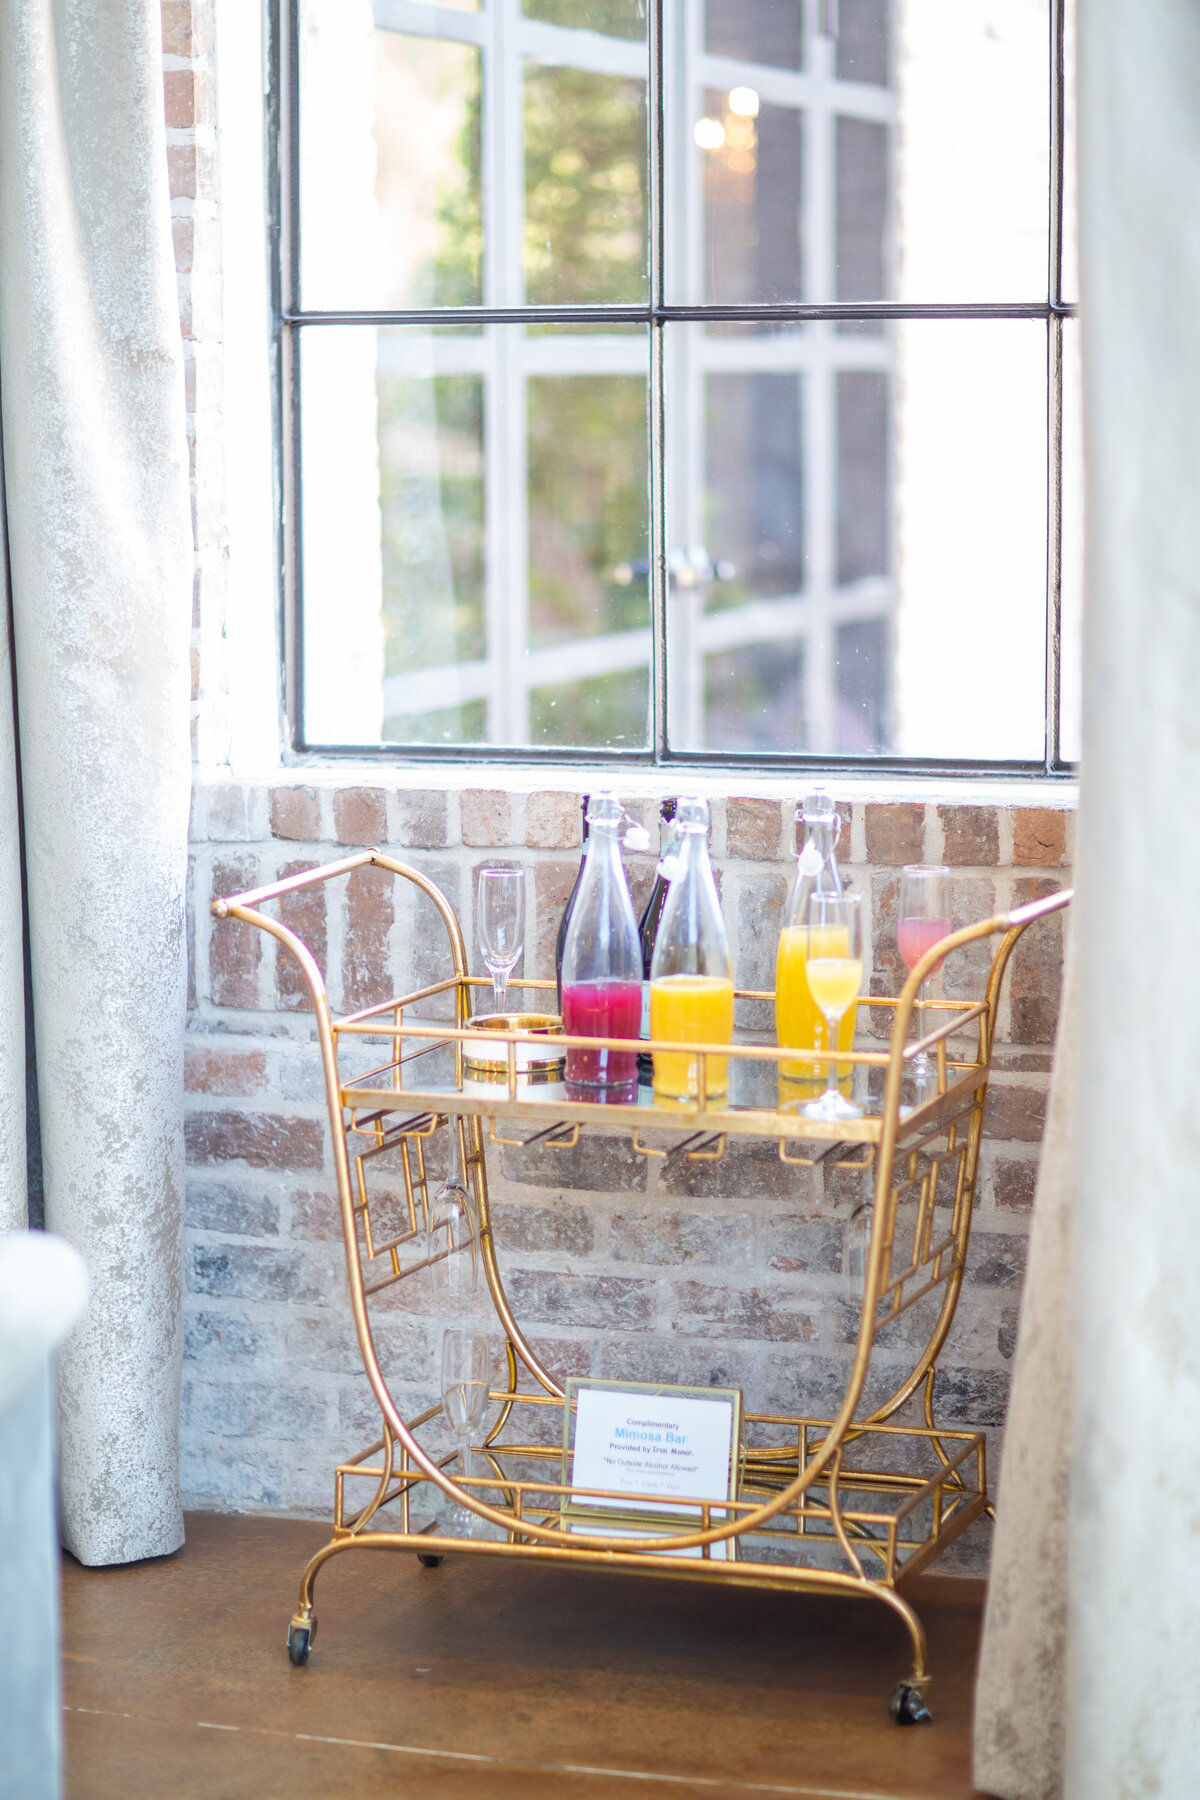 Sweet Mimosa Bar Cart in the Bridal Suite at Iron Manor